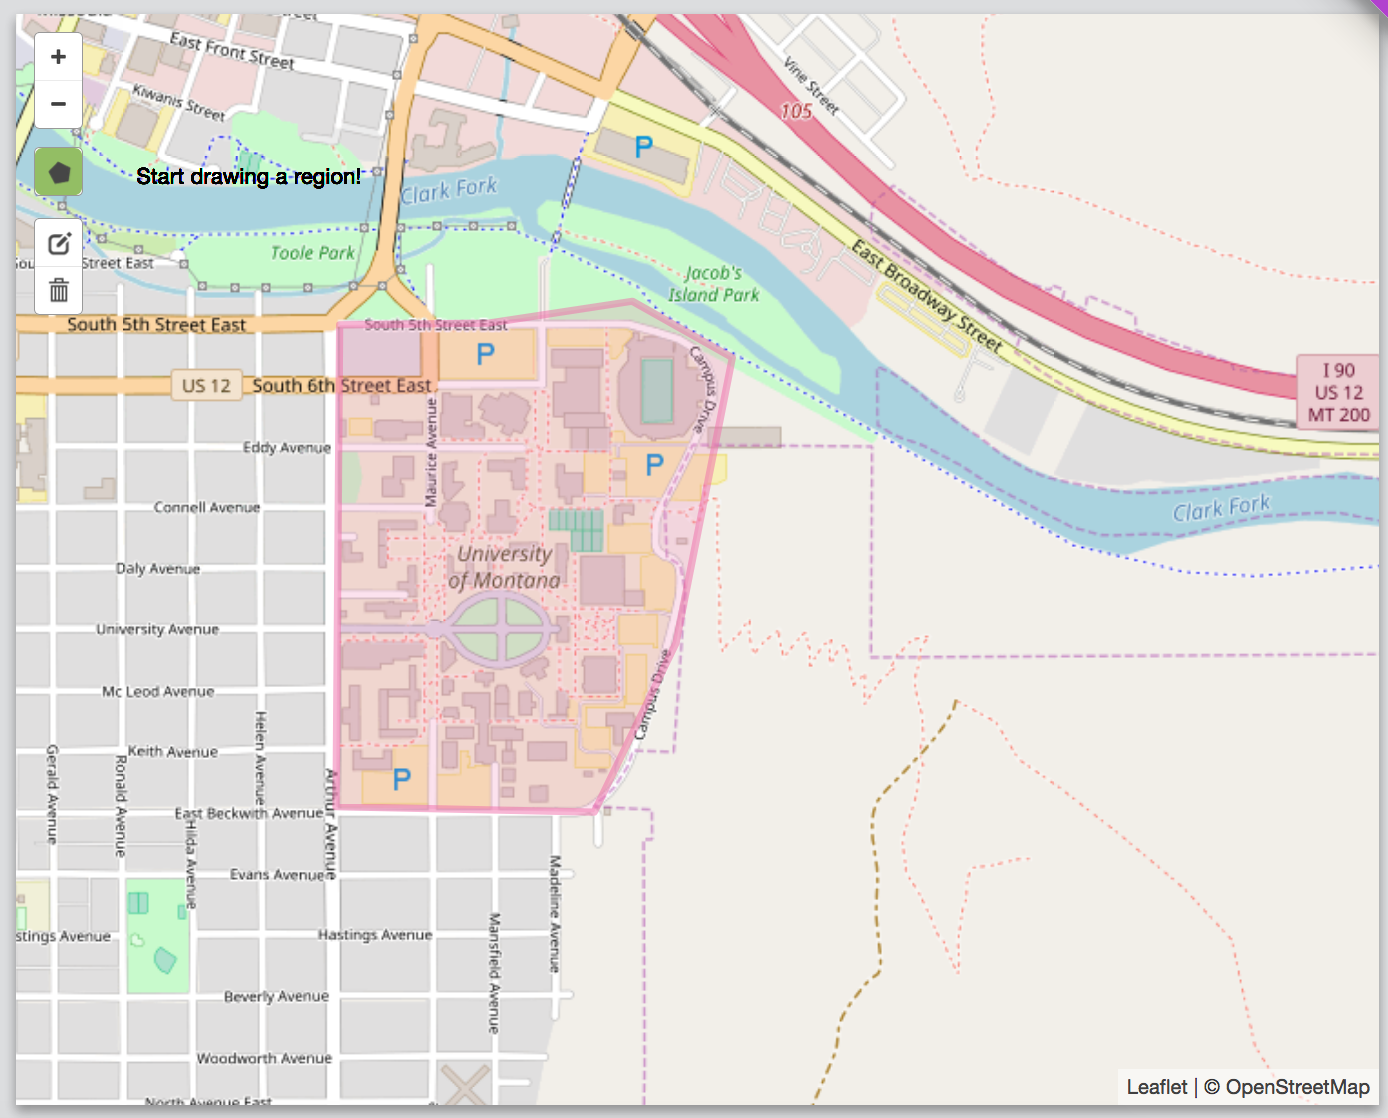 A geofence drawn around the University of Montana. Source: GeoFli